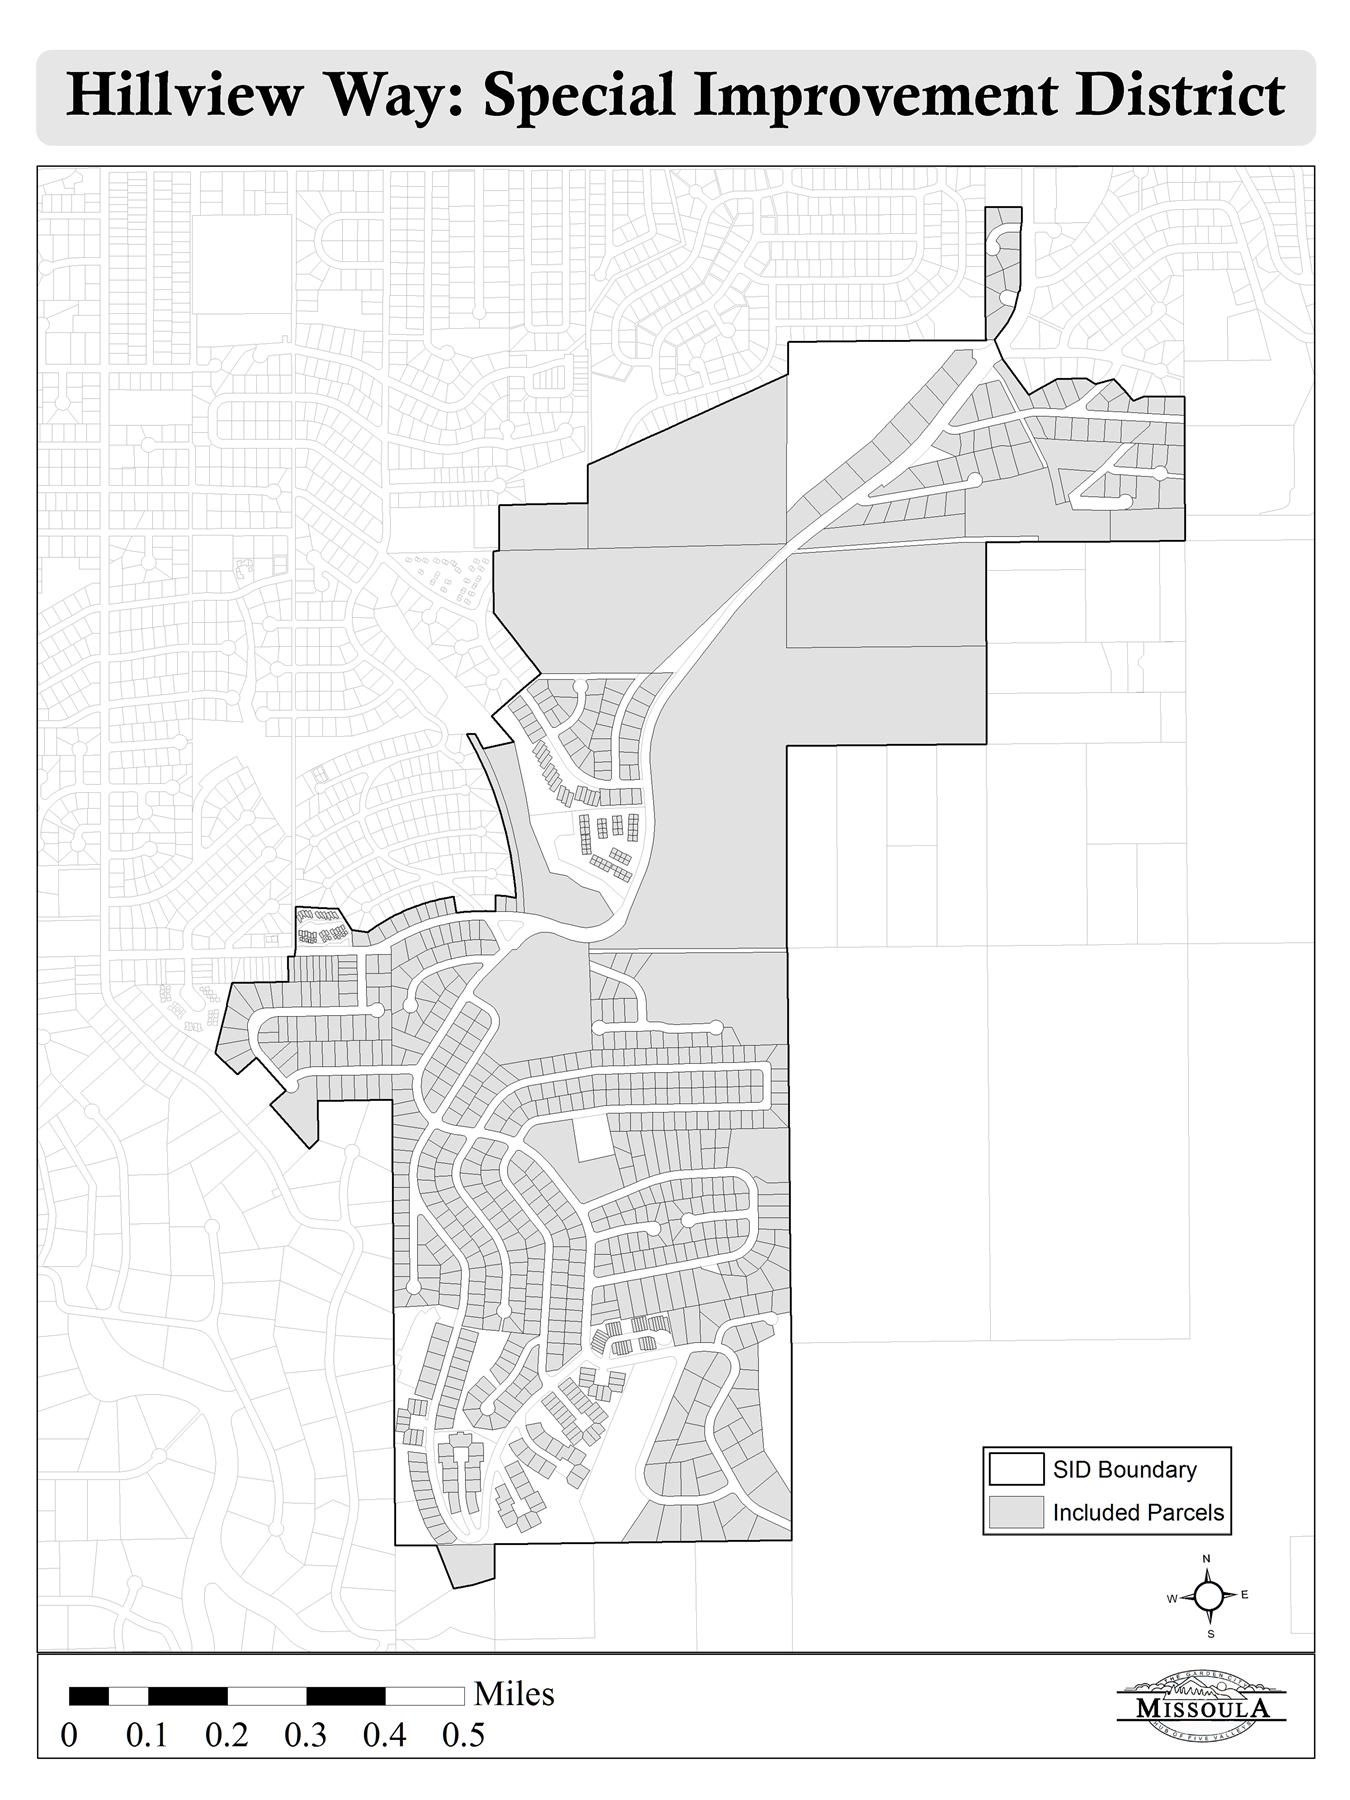 Hillview Way Special Improvement District Boundary Map